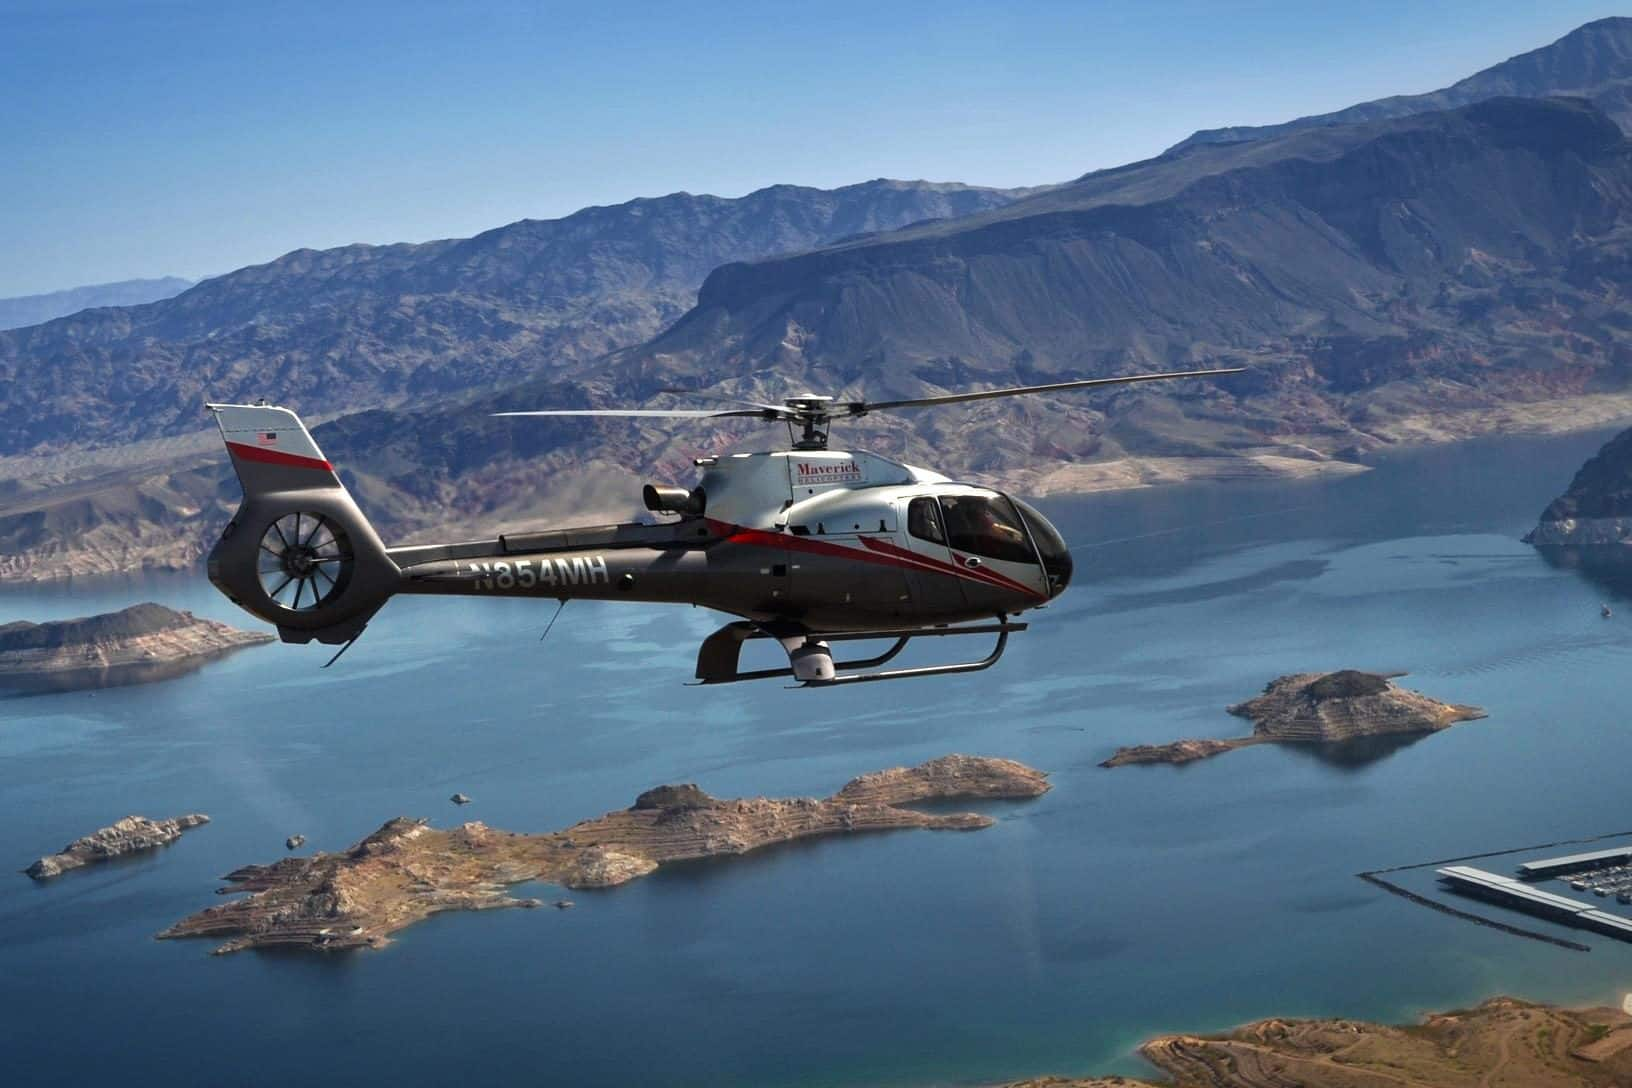 A Maverick helicopter tour over the Colorado River